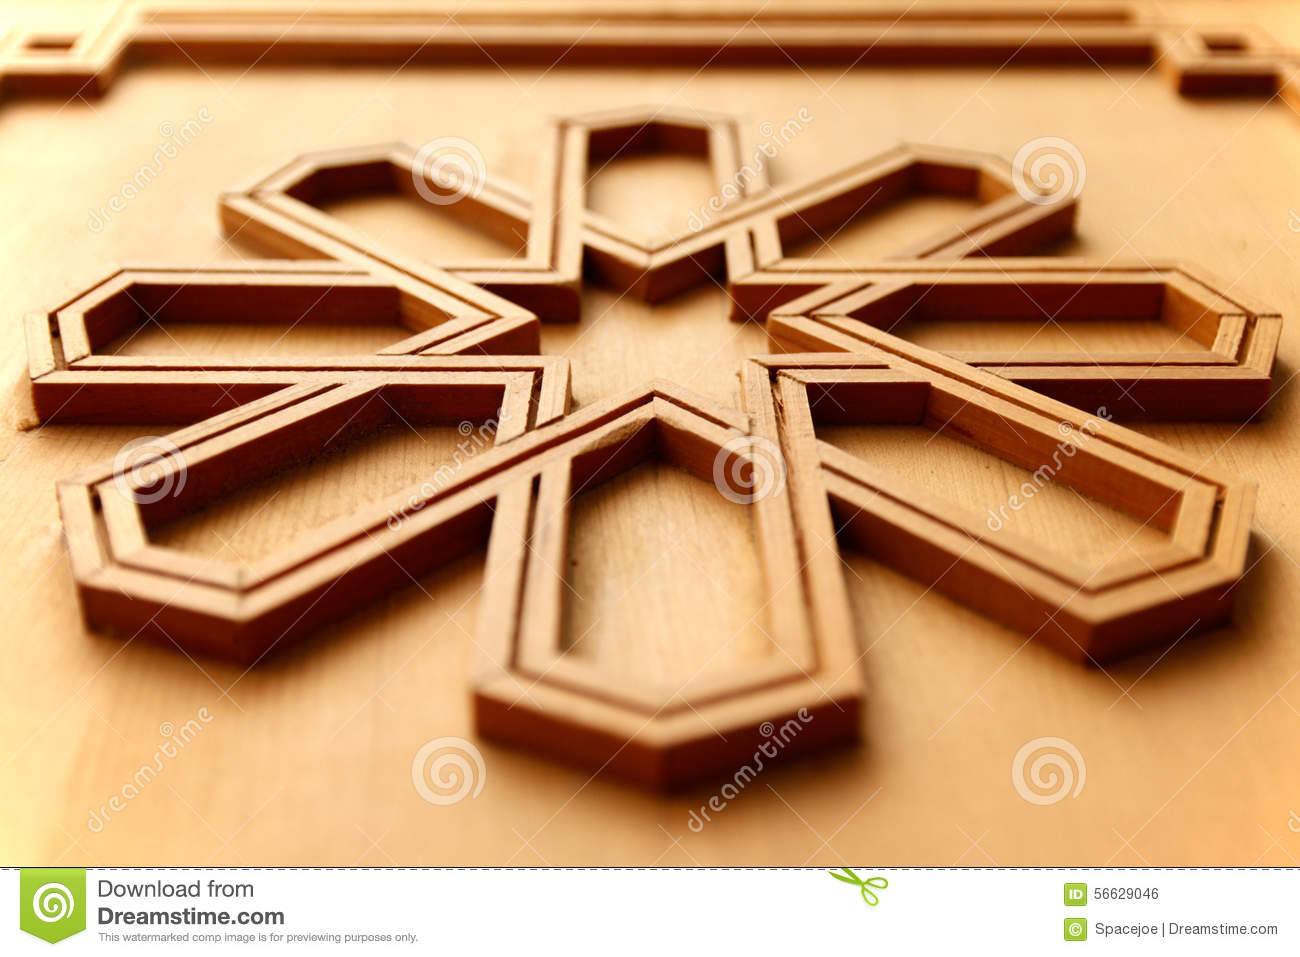 Moroccan Arabesque Carved Wood Panel Stock Photo - Image of pattern ...